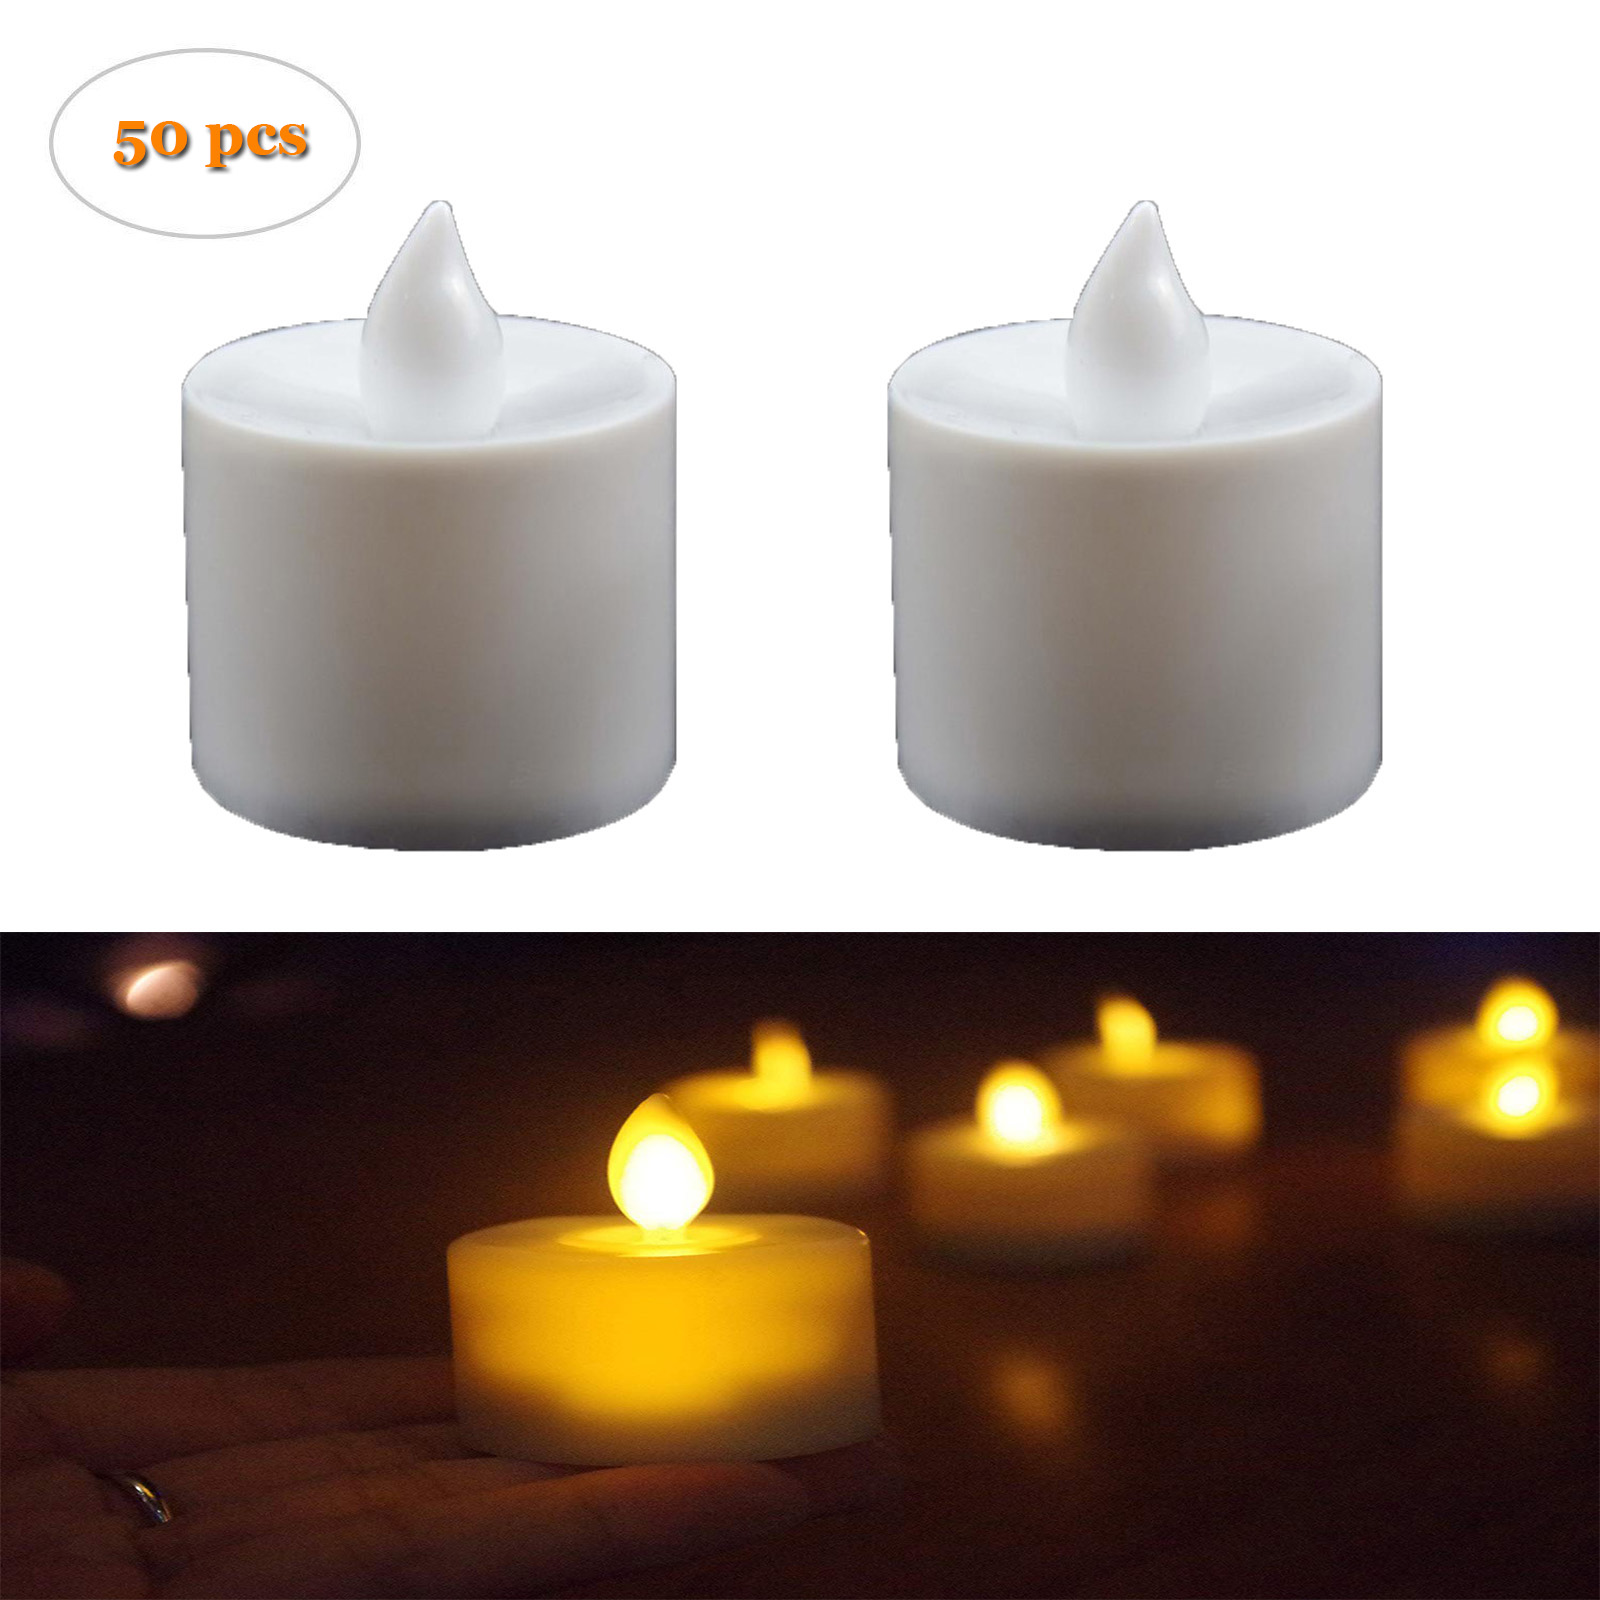 829e10fdc5 Details about 50pcs LED Electric Fake Flameless Candle Tea Light Lamp  Flickering Bright Yellow